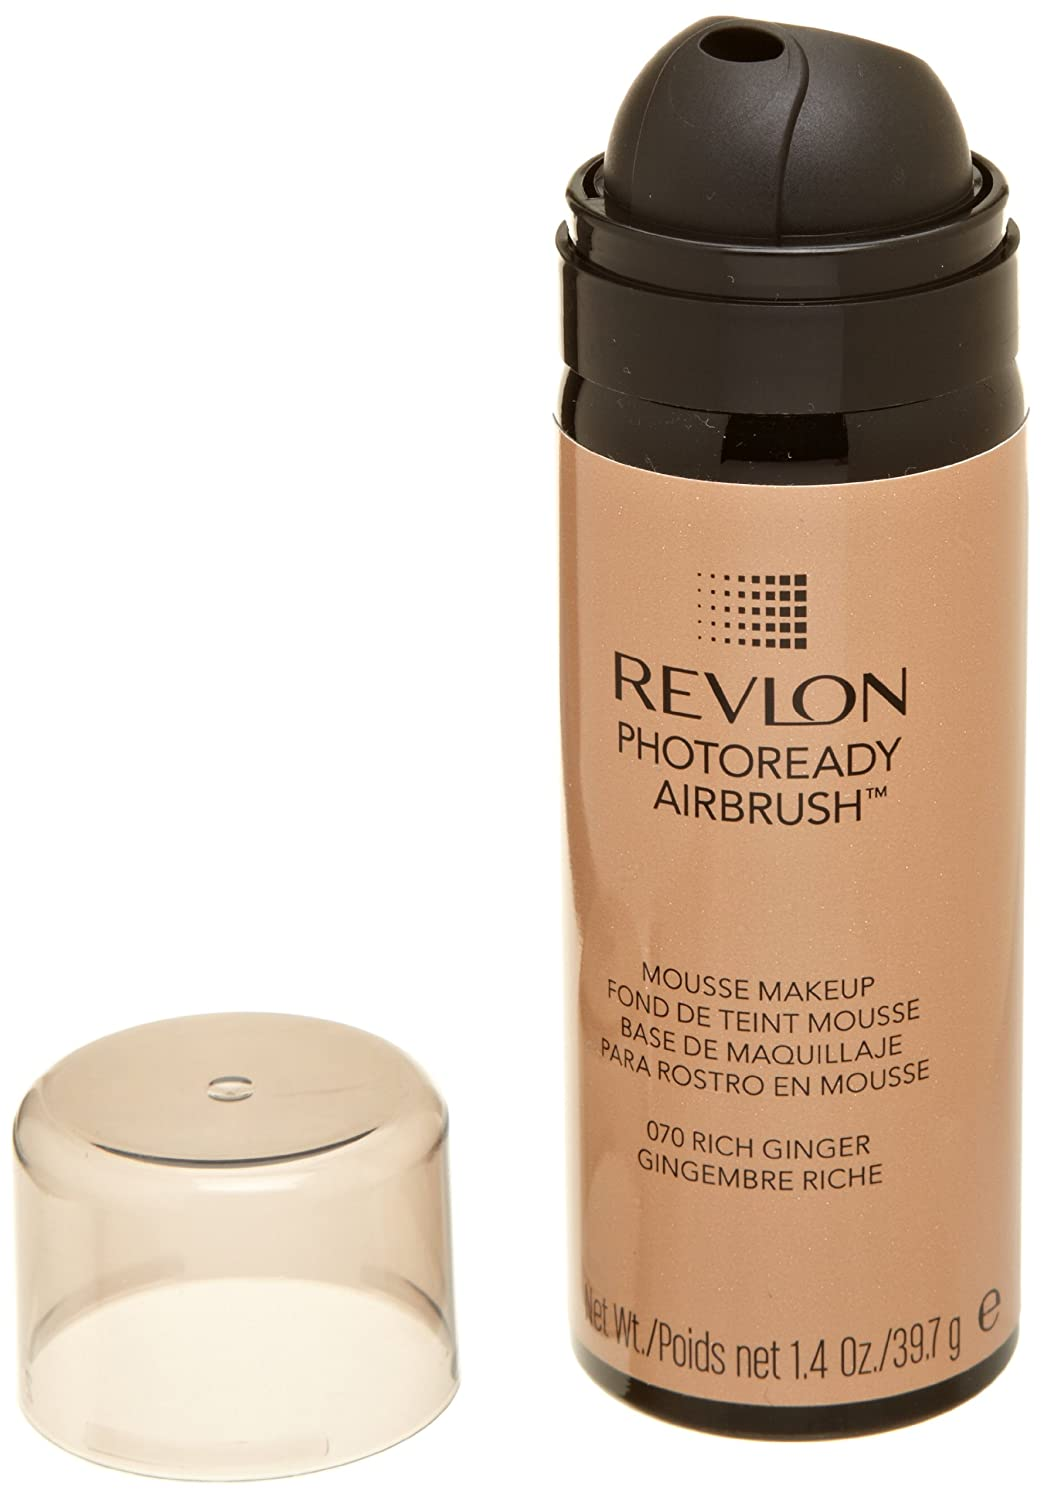 REVLON Photoready Airbrush Mousse Makeup, Rich Ginger, 1.4 Ounce